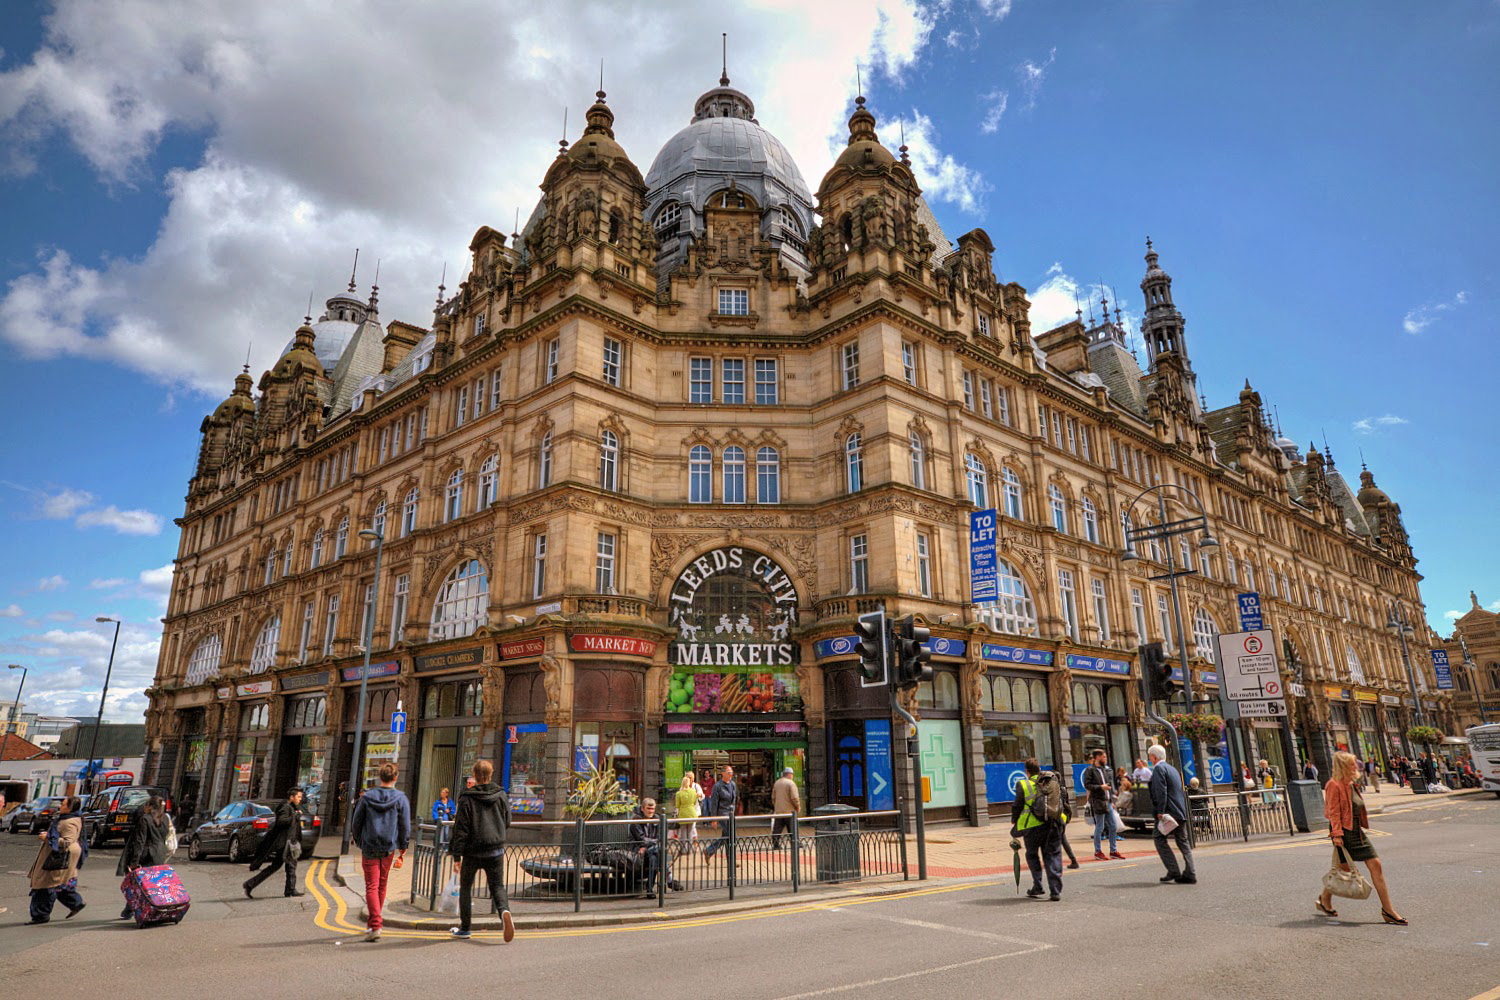 Taxi Leeds – Heathrow Airport from £249.00*